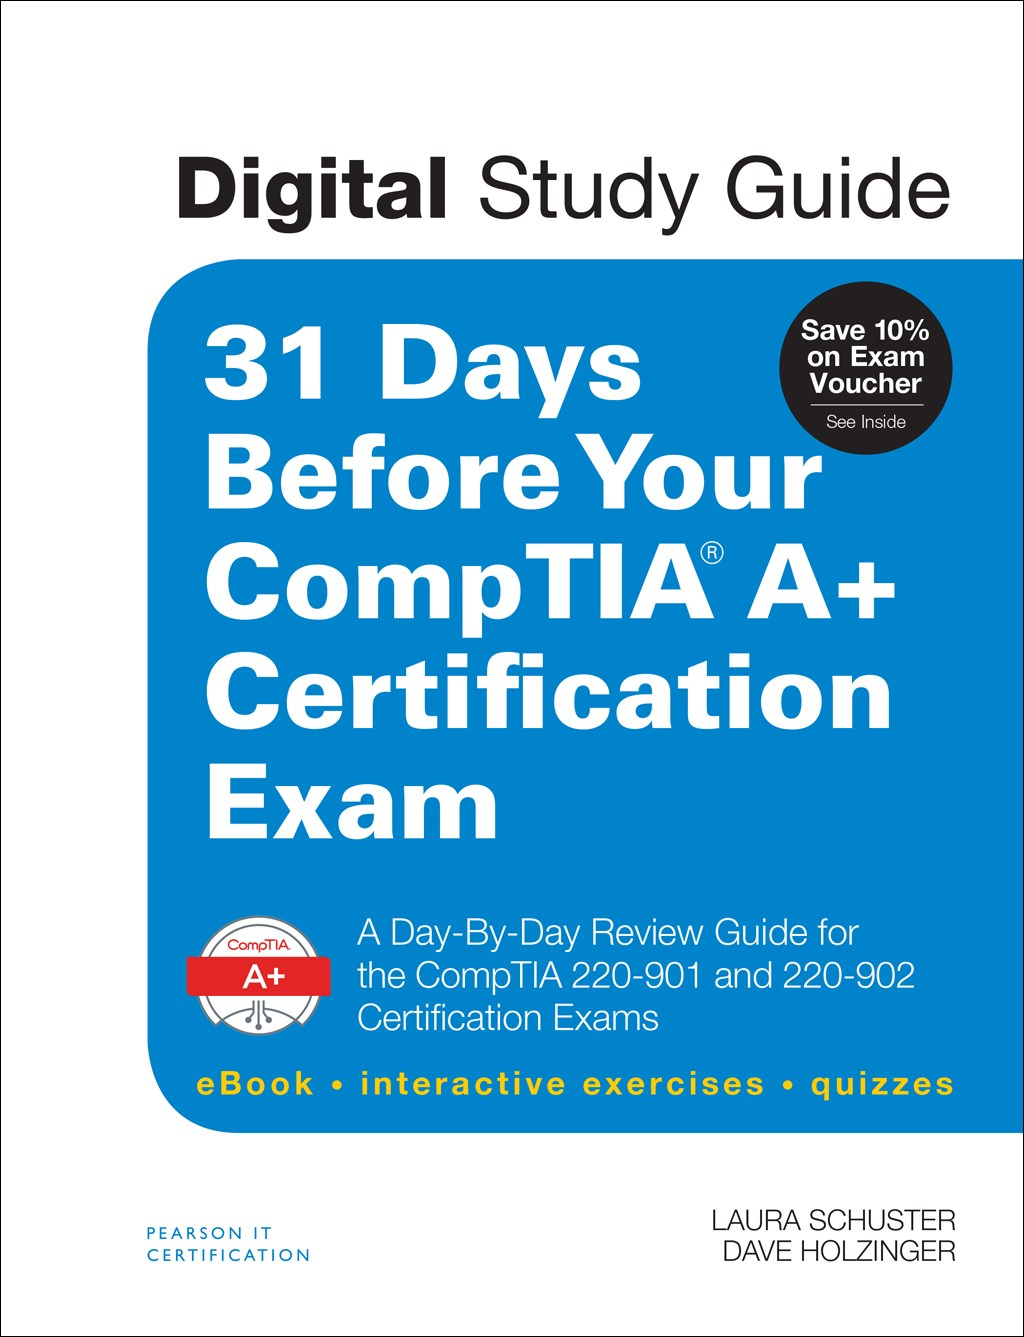 31 Days Before Your CompTIA A+ Certification Exam (Digital Study Guide): A Day-By-Day Review Guide for the CompTIA 220-901 and 220-902 Certification exams (eBook, interactive exercises, quizzes)